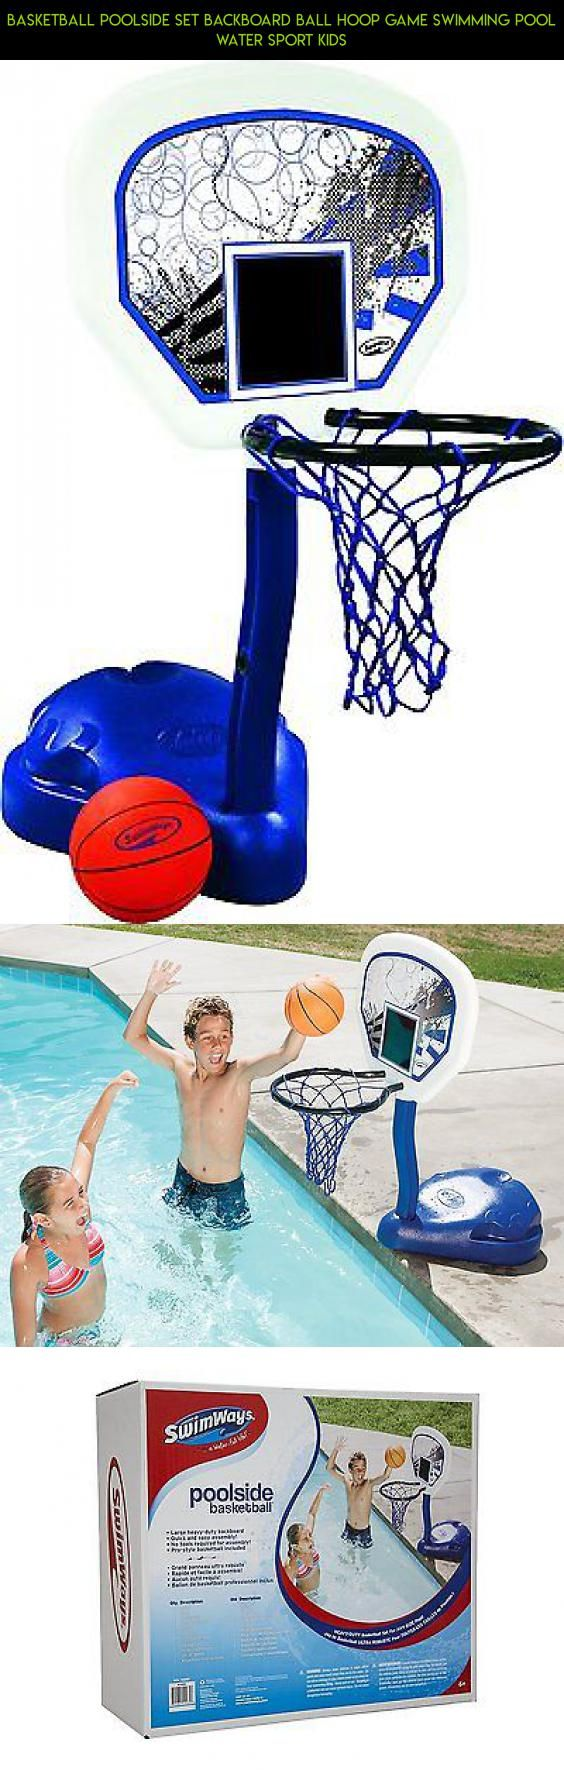 Basketball Poolside Set Backboard Ball Hoop Game Swimming Pool Water Sport Kids #technology #tech #parts #poolside #plans #kit #products #drone #camera #basketball #hoop #gadgets #fpv #shopping #racing